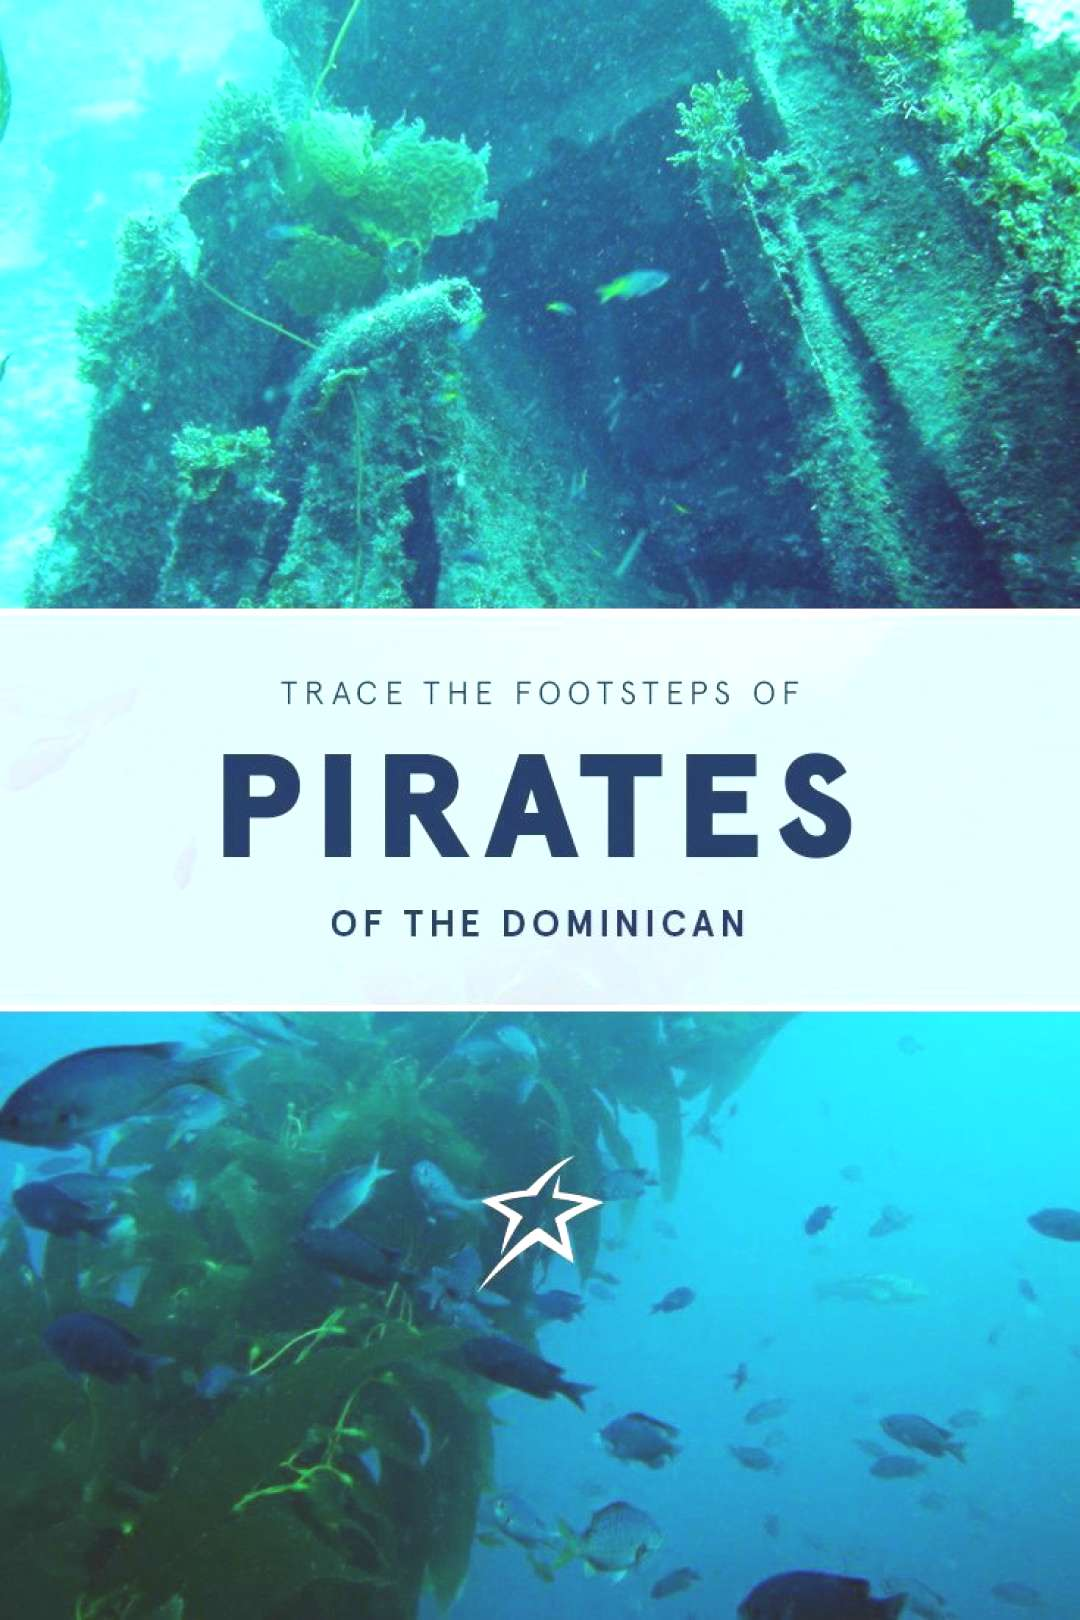 Pirates of the Dominican   Experience Transat - The Dominican Republic is steeped in pirate histor